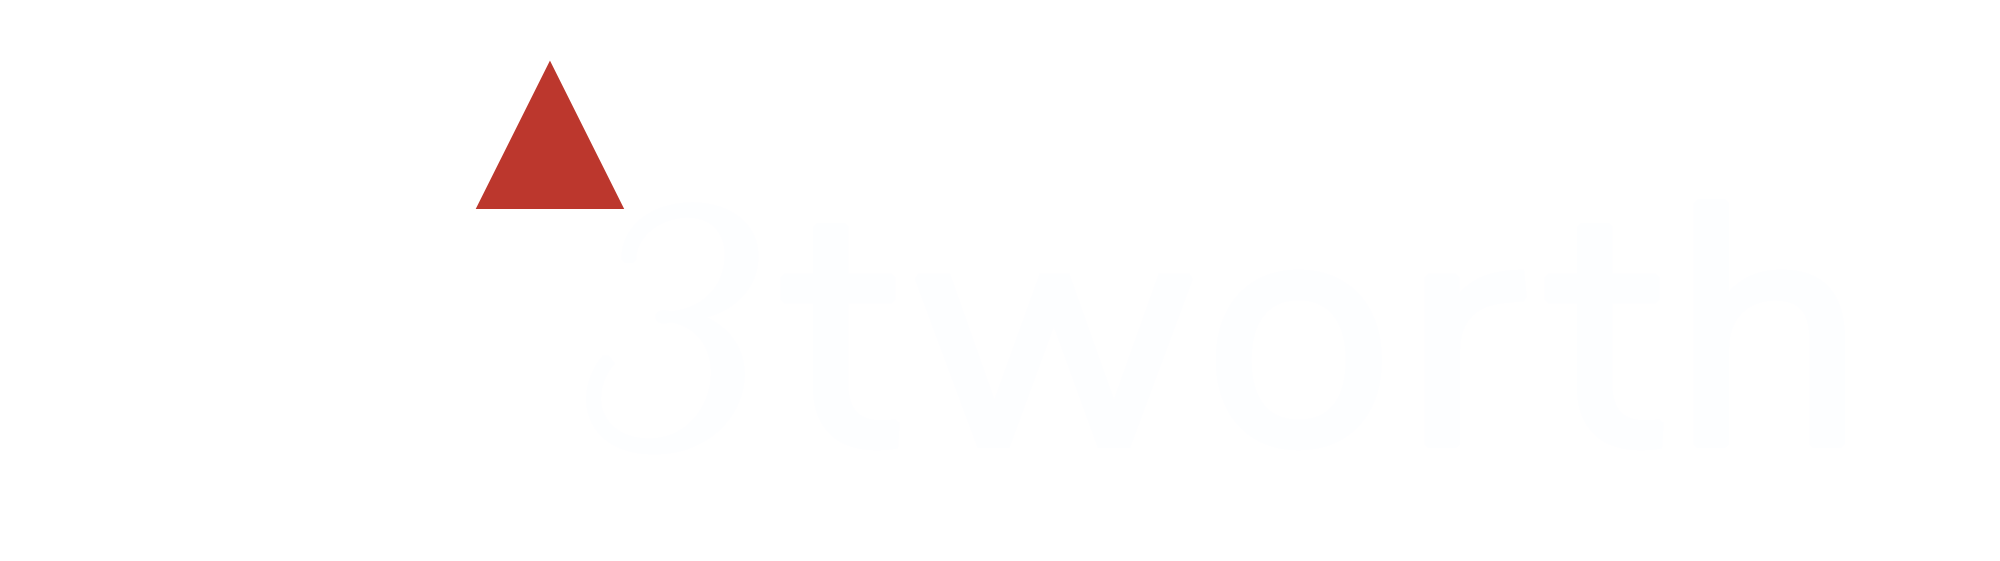 n3tworth business solutions thumbnail